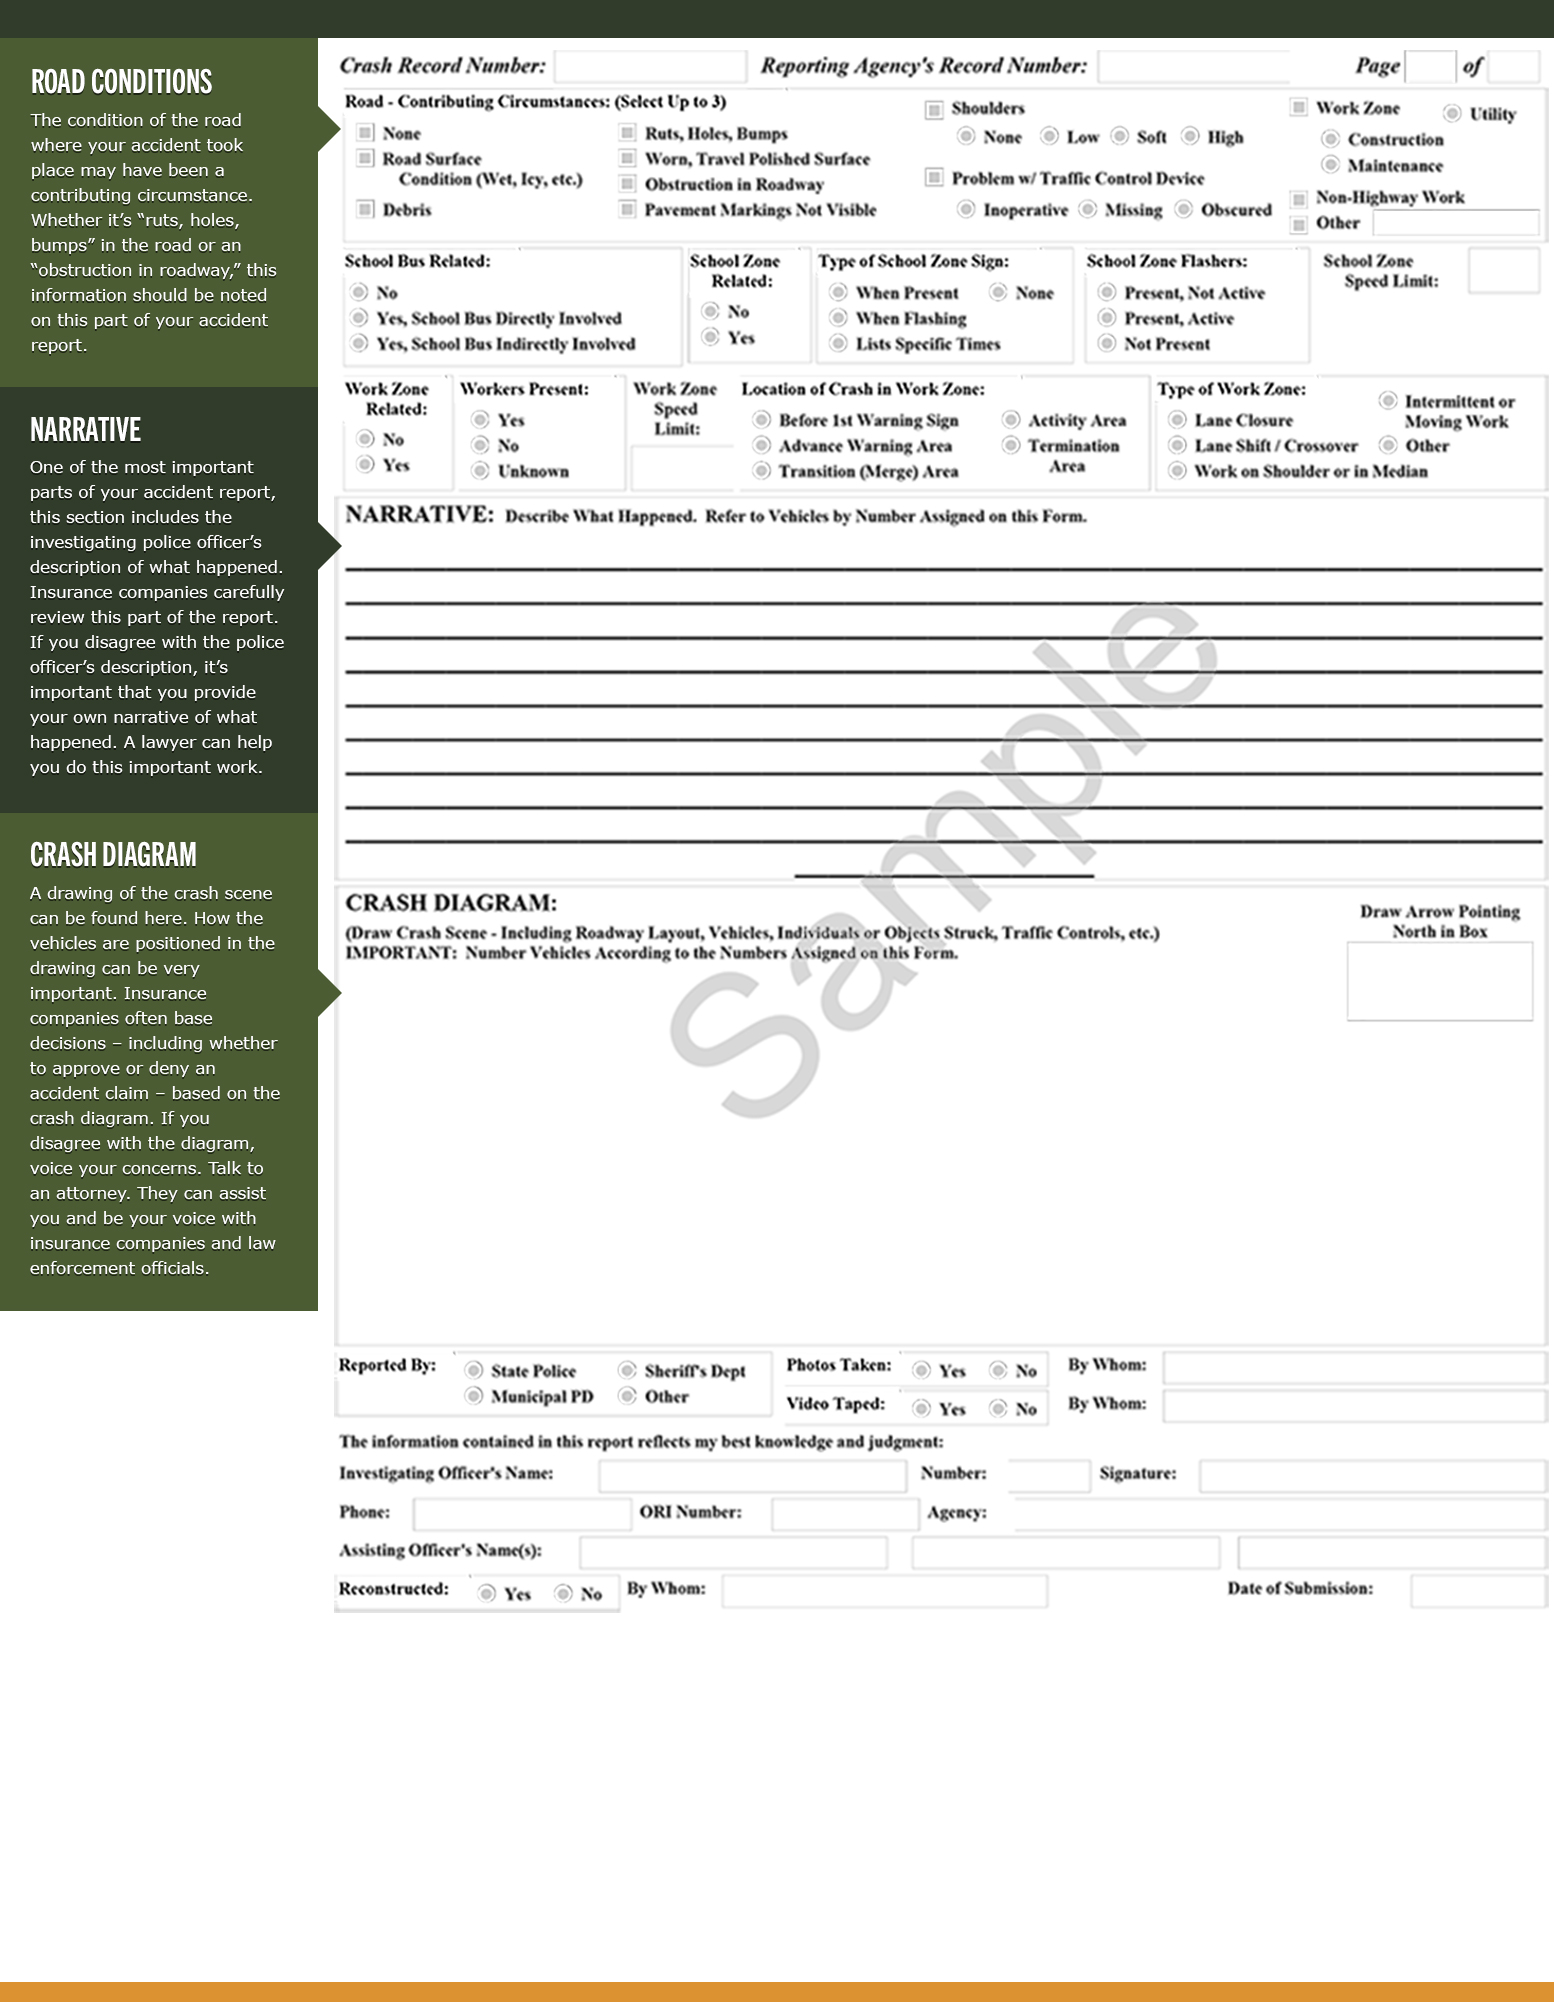 WV Accident Report Page 2